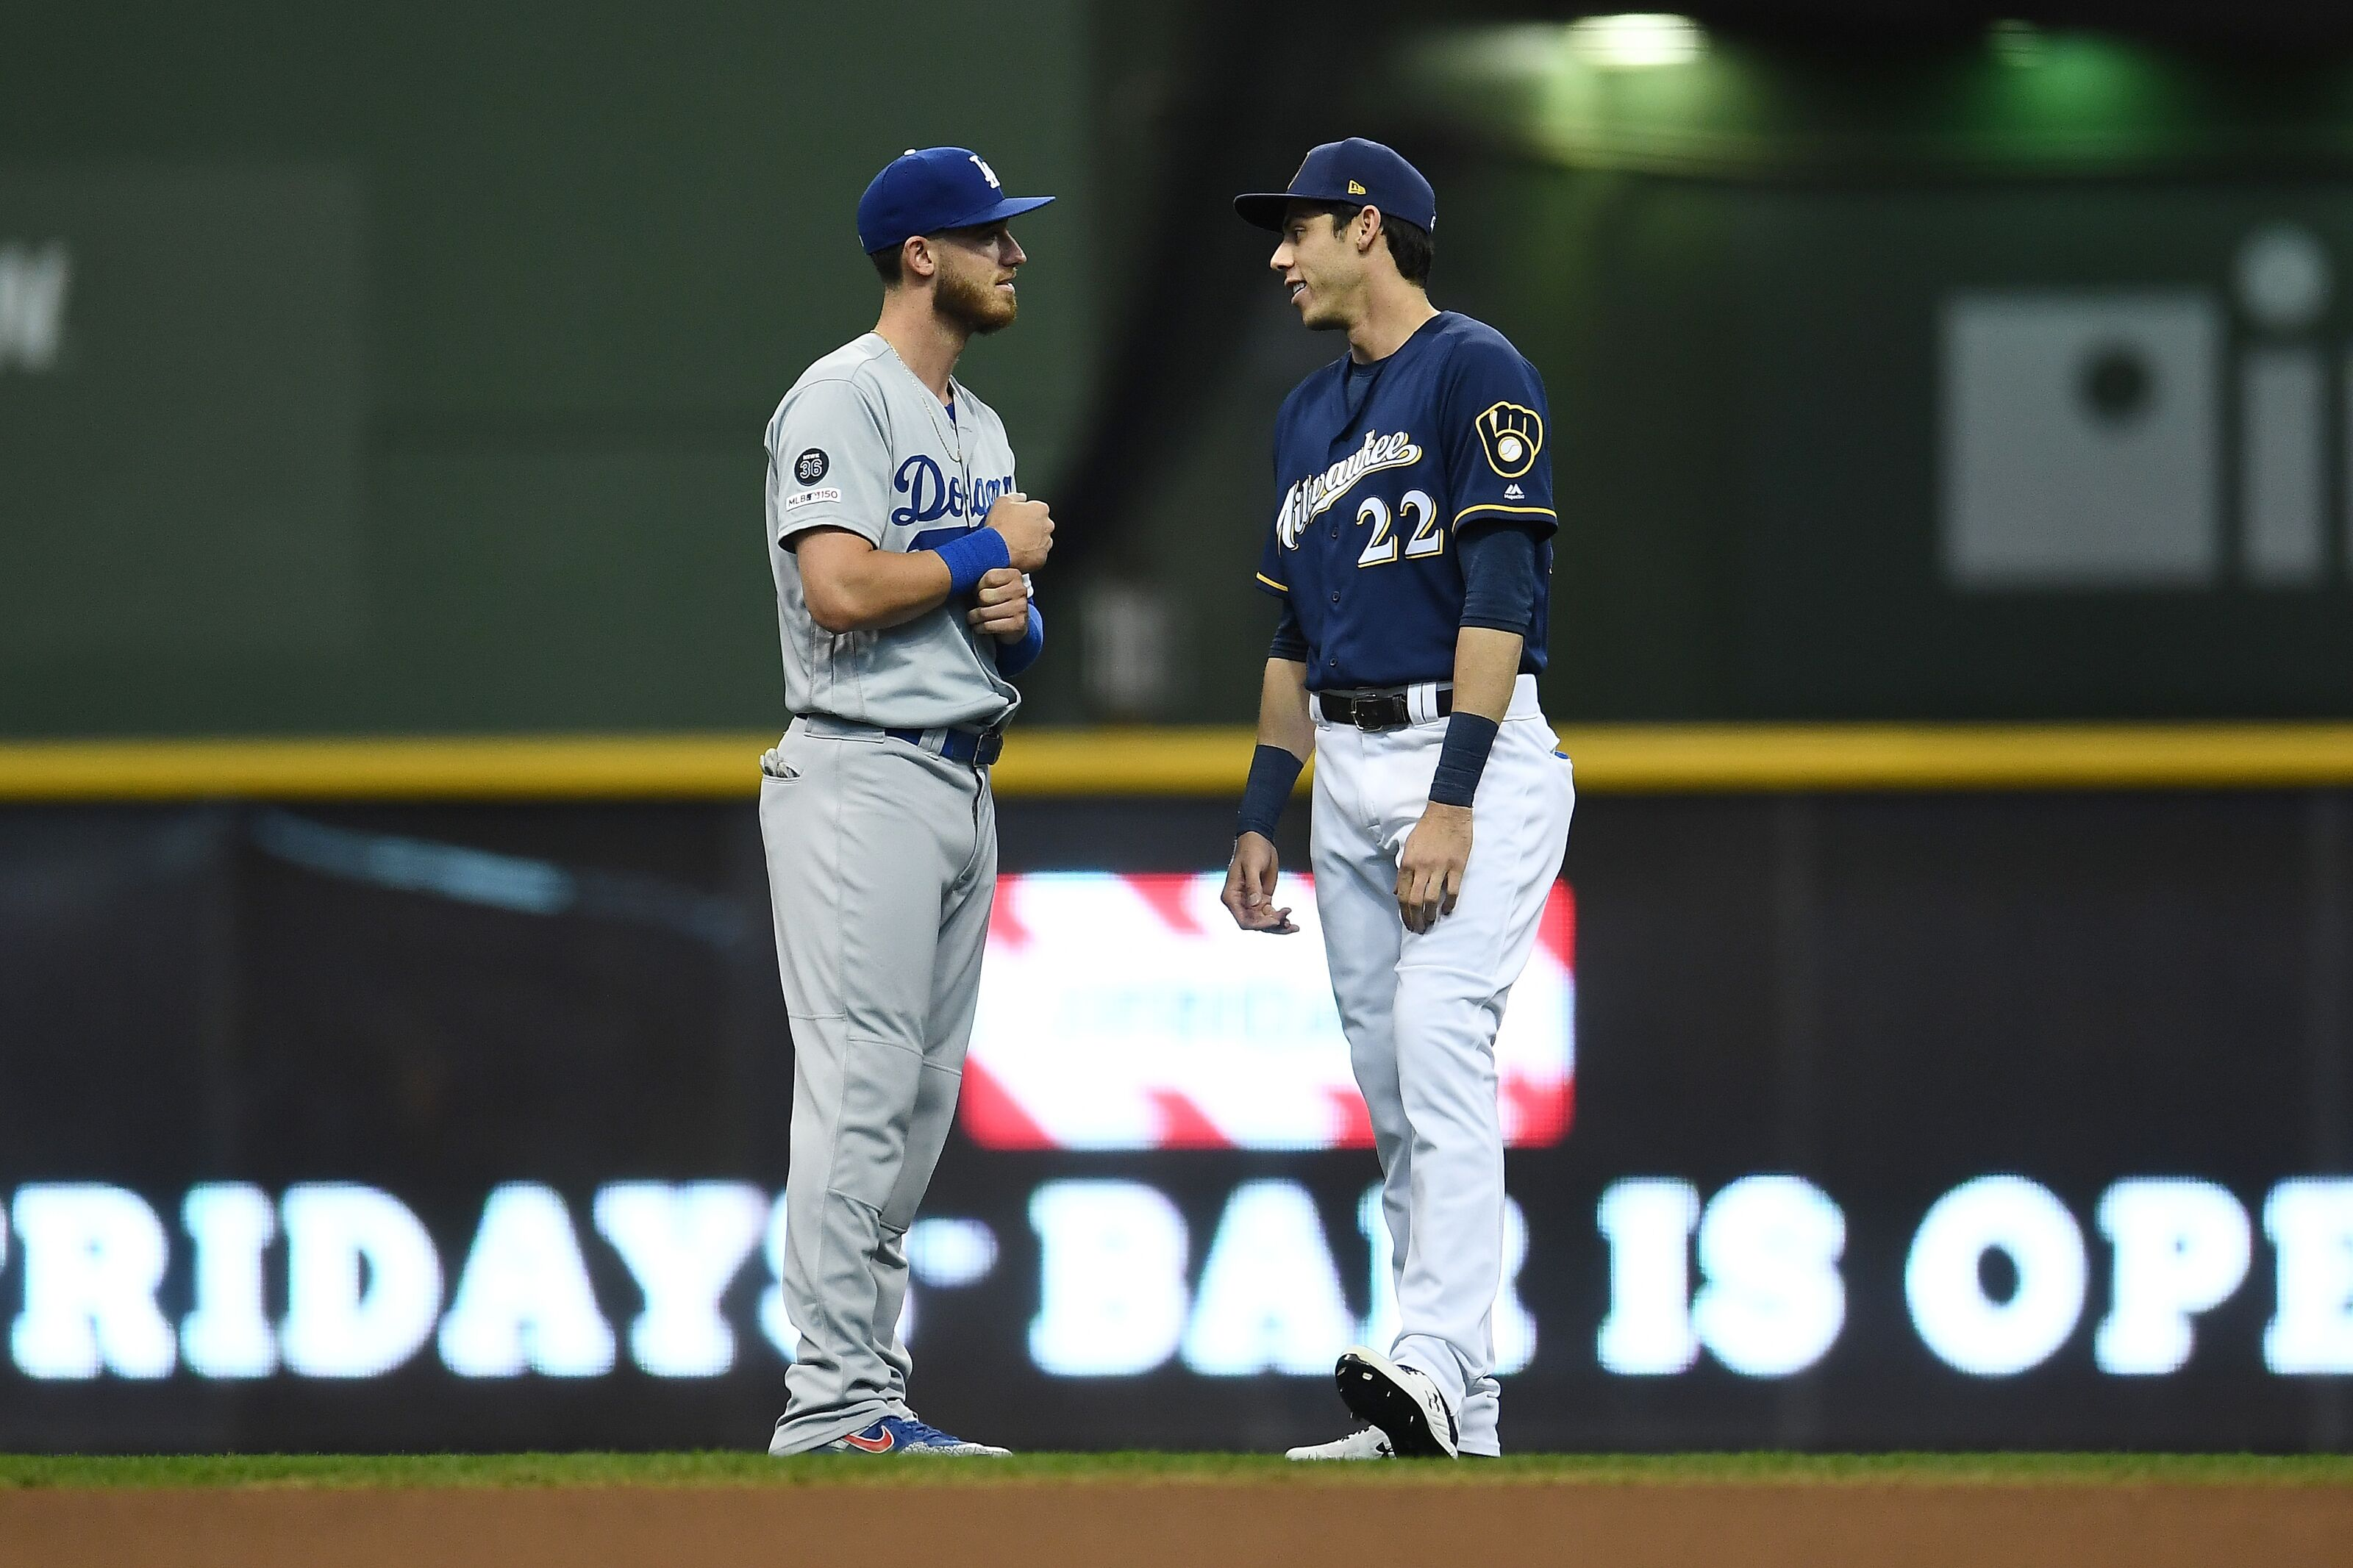 Christian Yelich versus Cody Bellinger: Who is the better player?